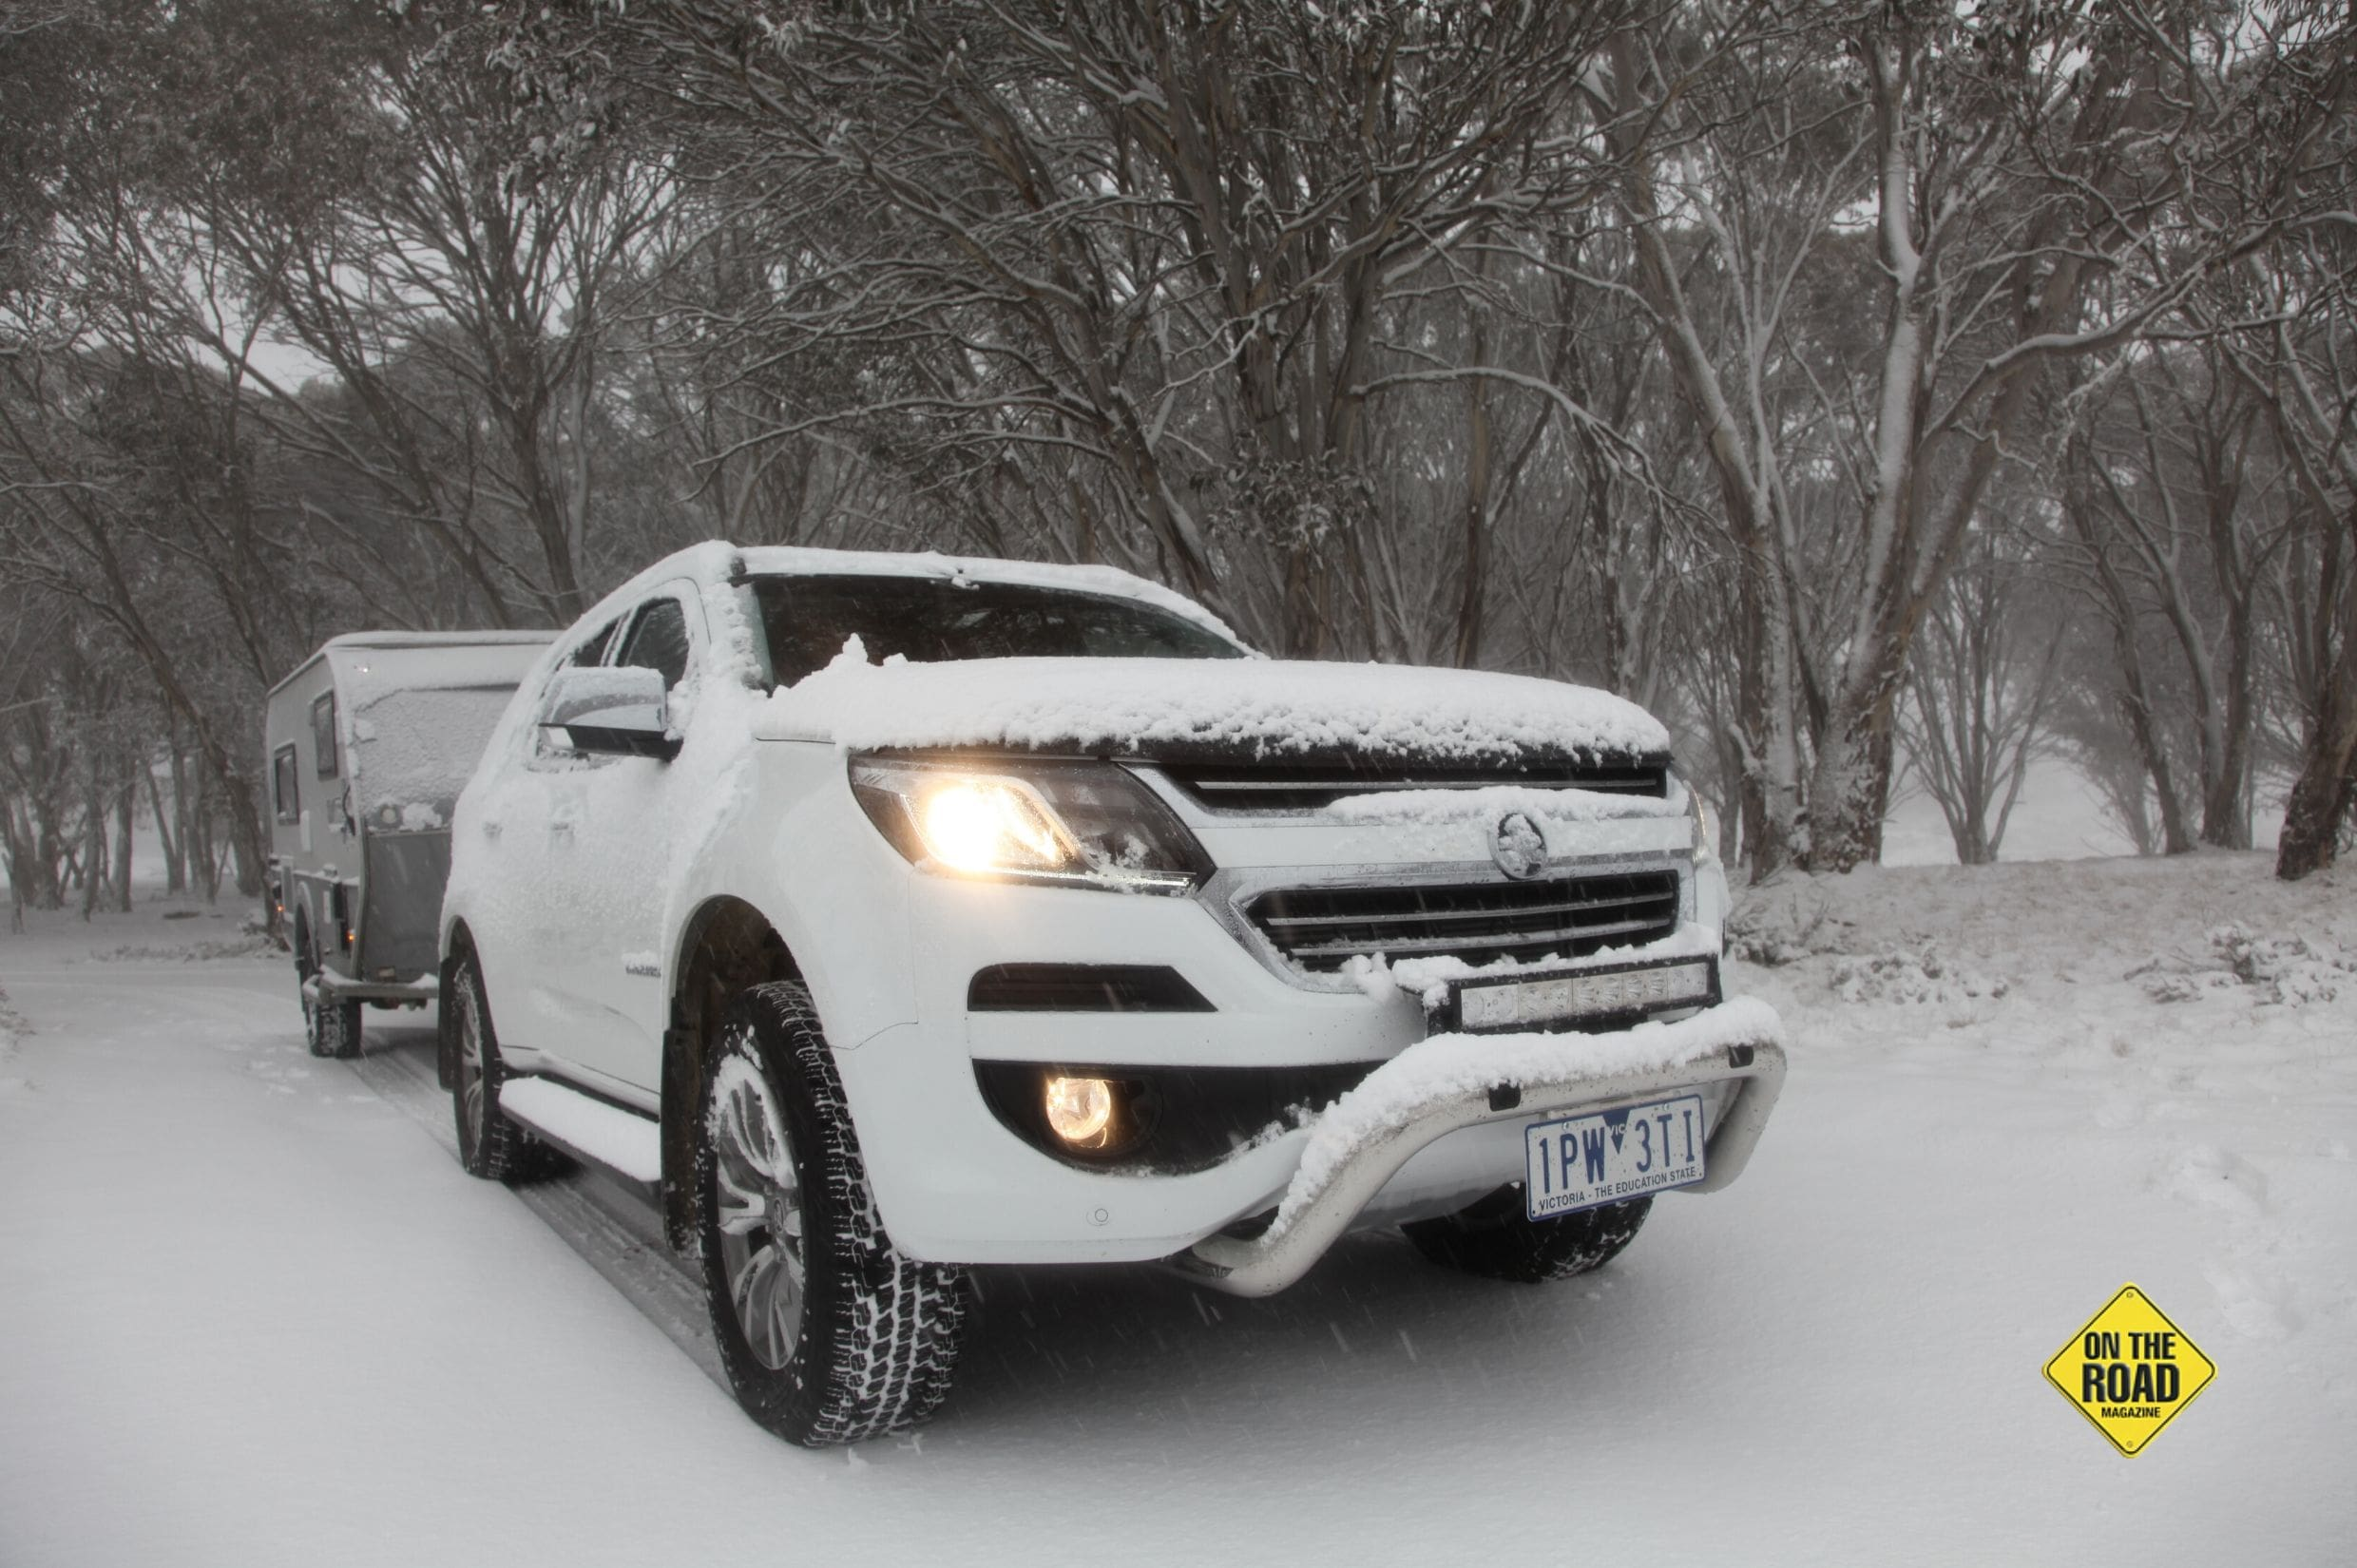 We took the Holden up to the snow and it handled the conditions with ease-min